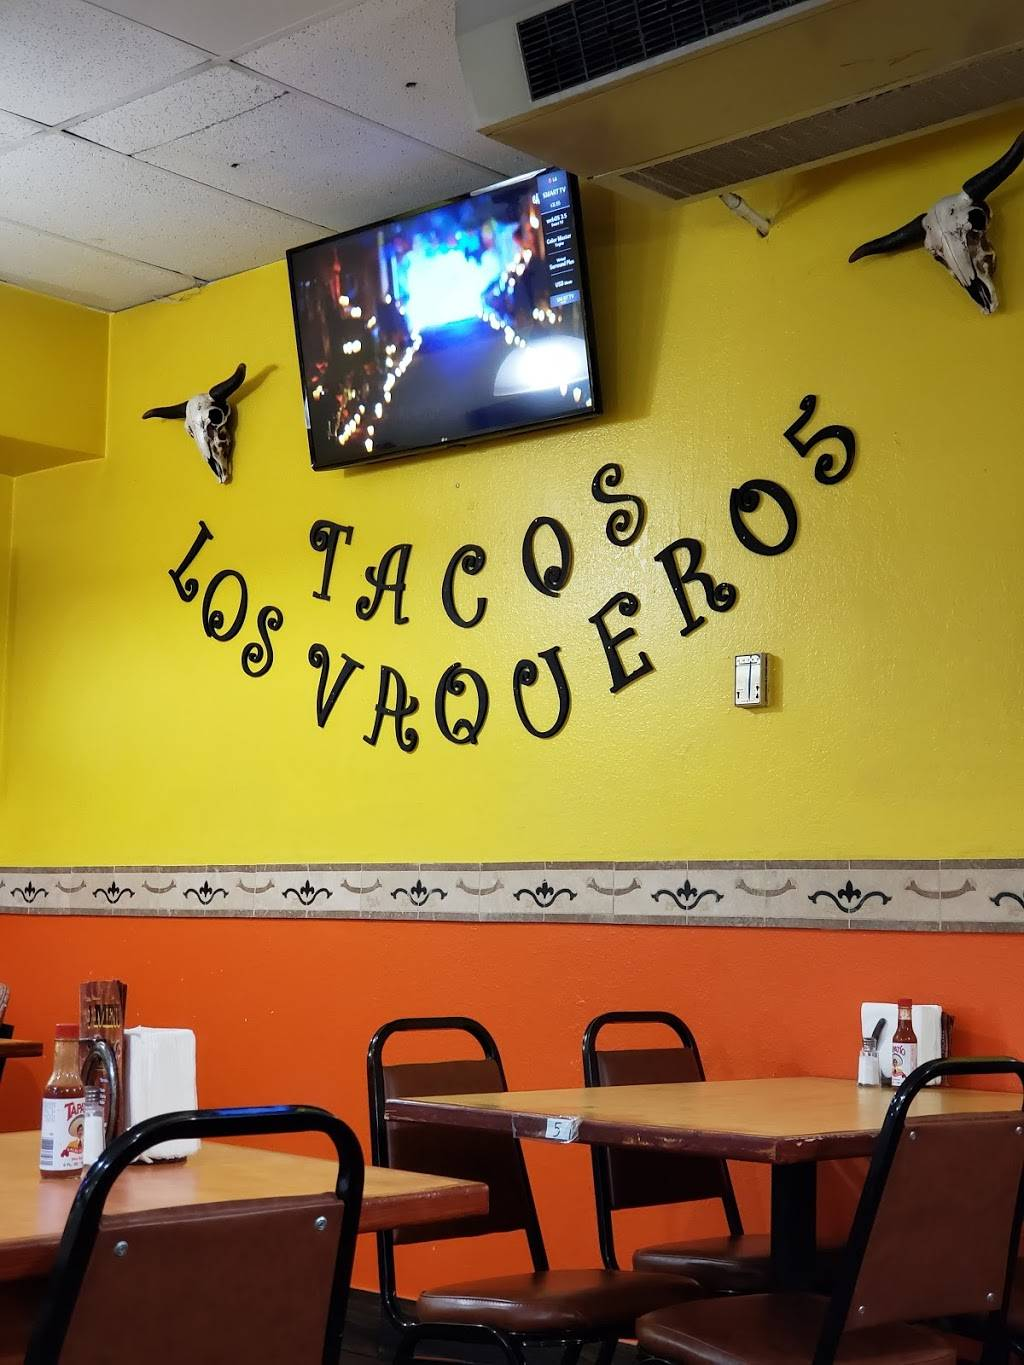 Tacos Los Vaqueros | restaurant | 1880 W 92nd Ave, Federal Heights, CO 80260, USA | 3034290925 OR +1 303-429-0925